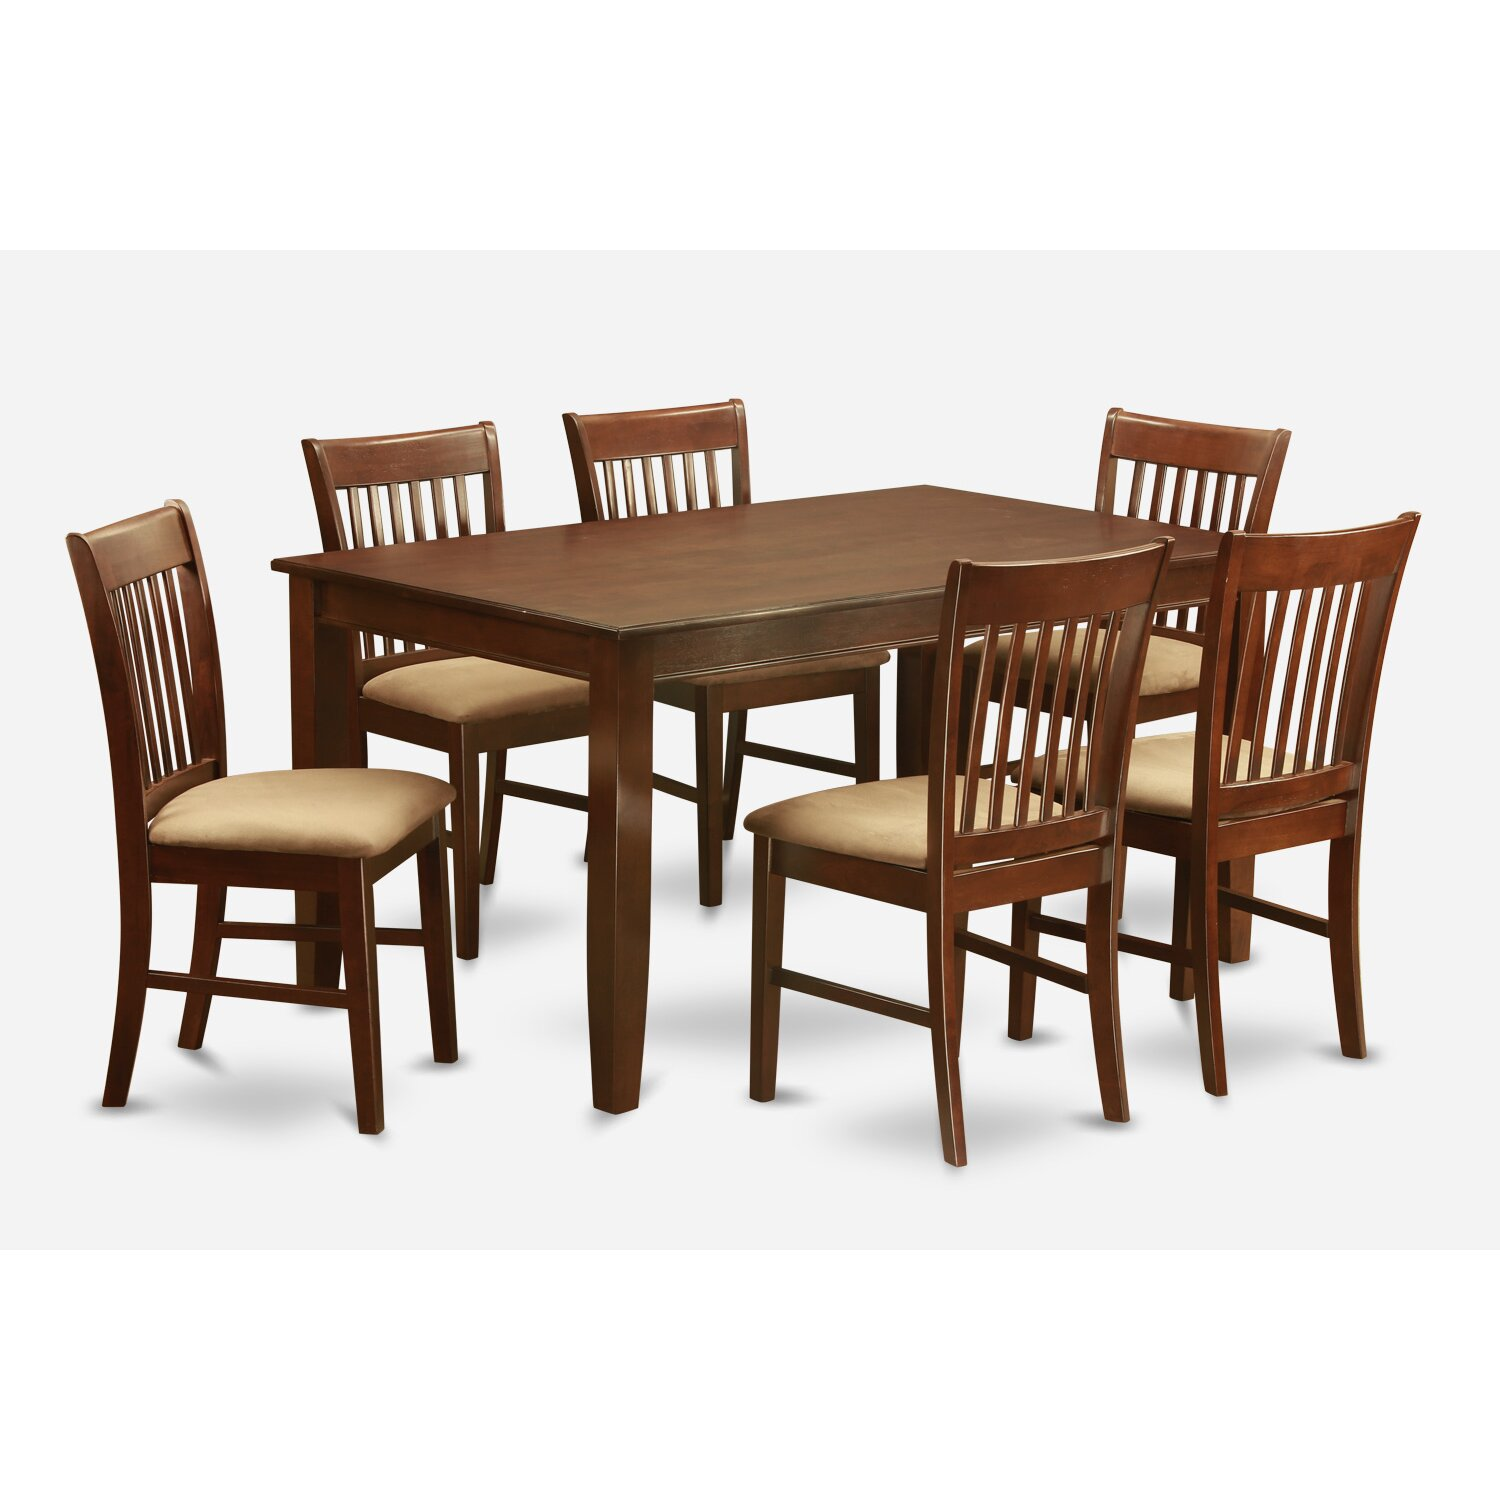 Wooden Dining Set ~ Wooden importers dudley piece dining set reviews wayfair